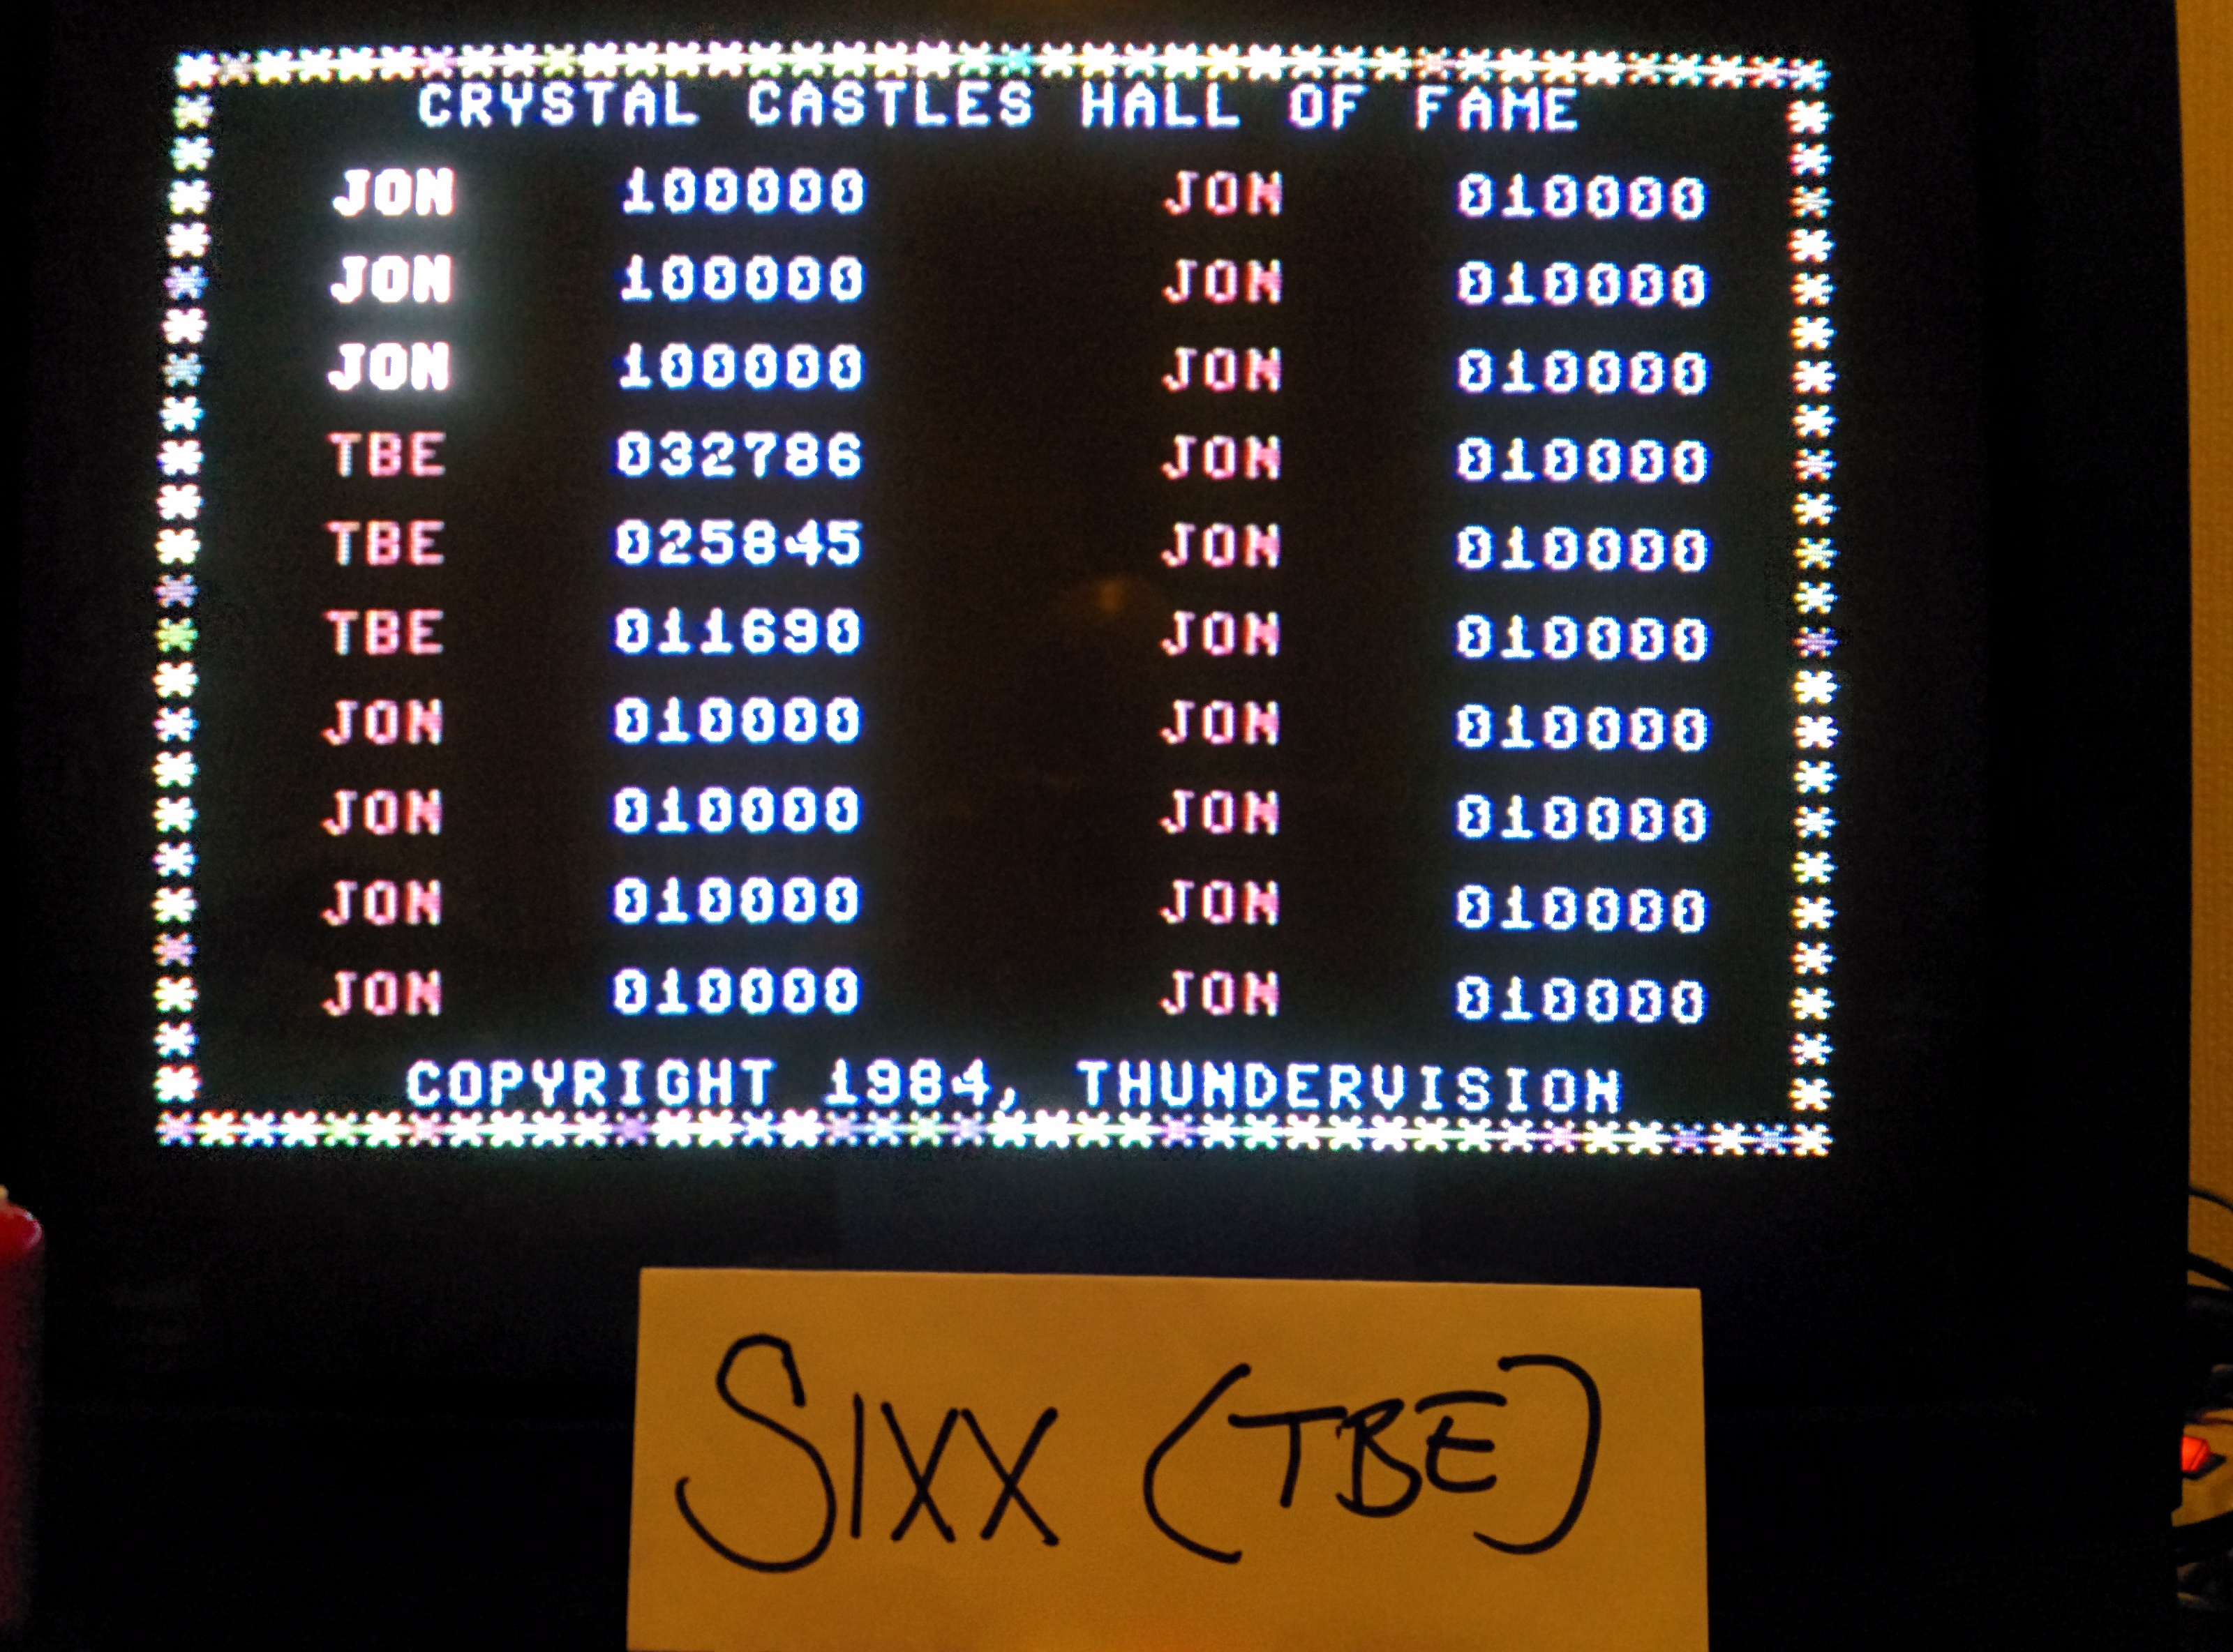 Sixx: Crystal Castles [Thundervision] (Commodore 64) 32,786 points on 2014-05-16 19:31:37